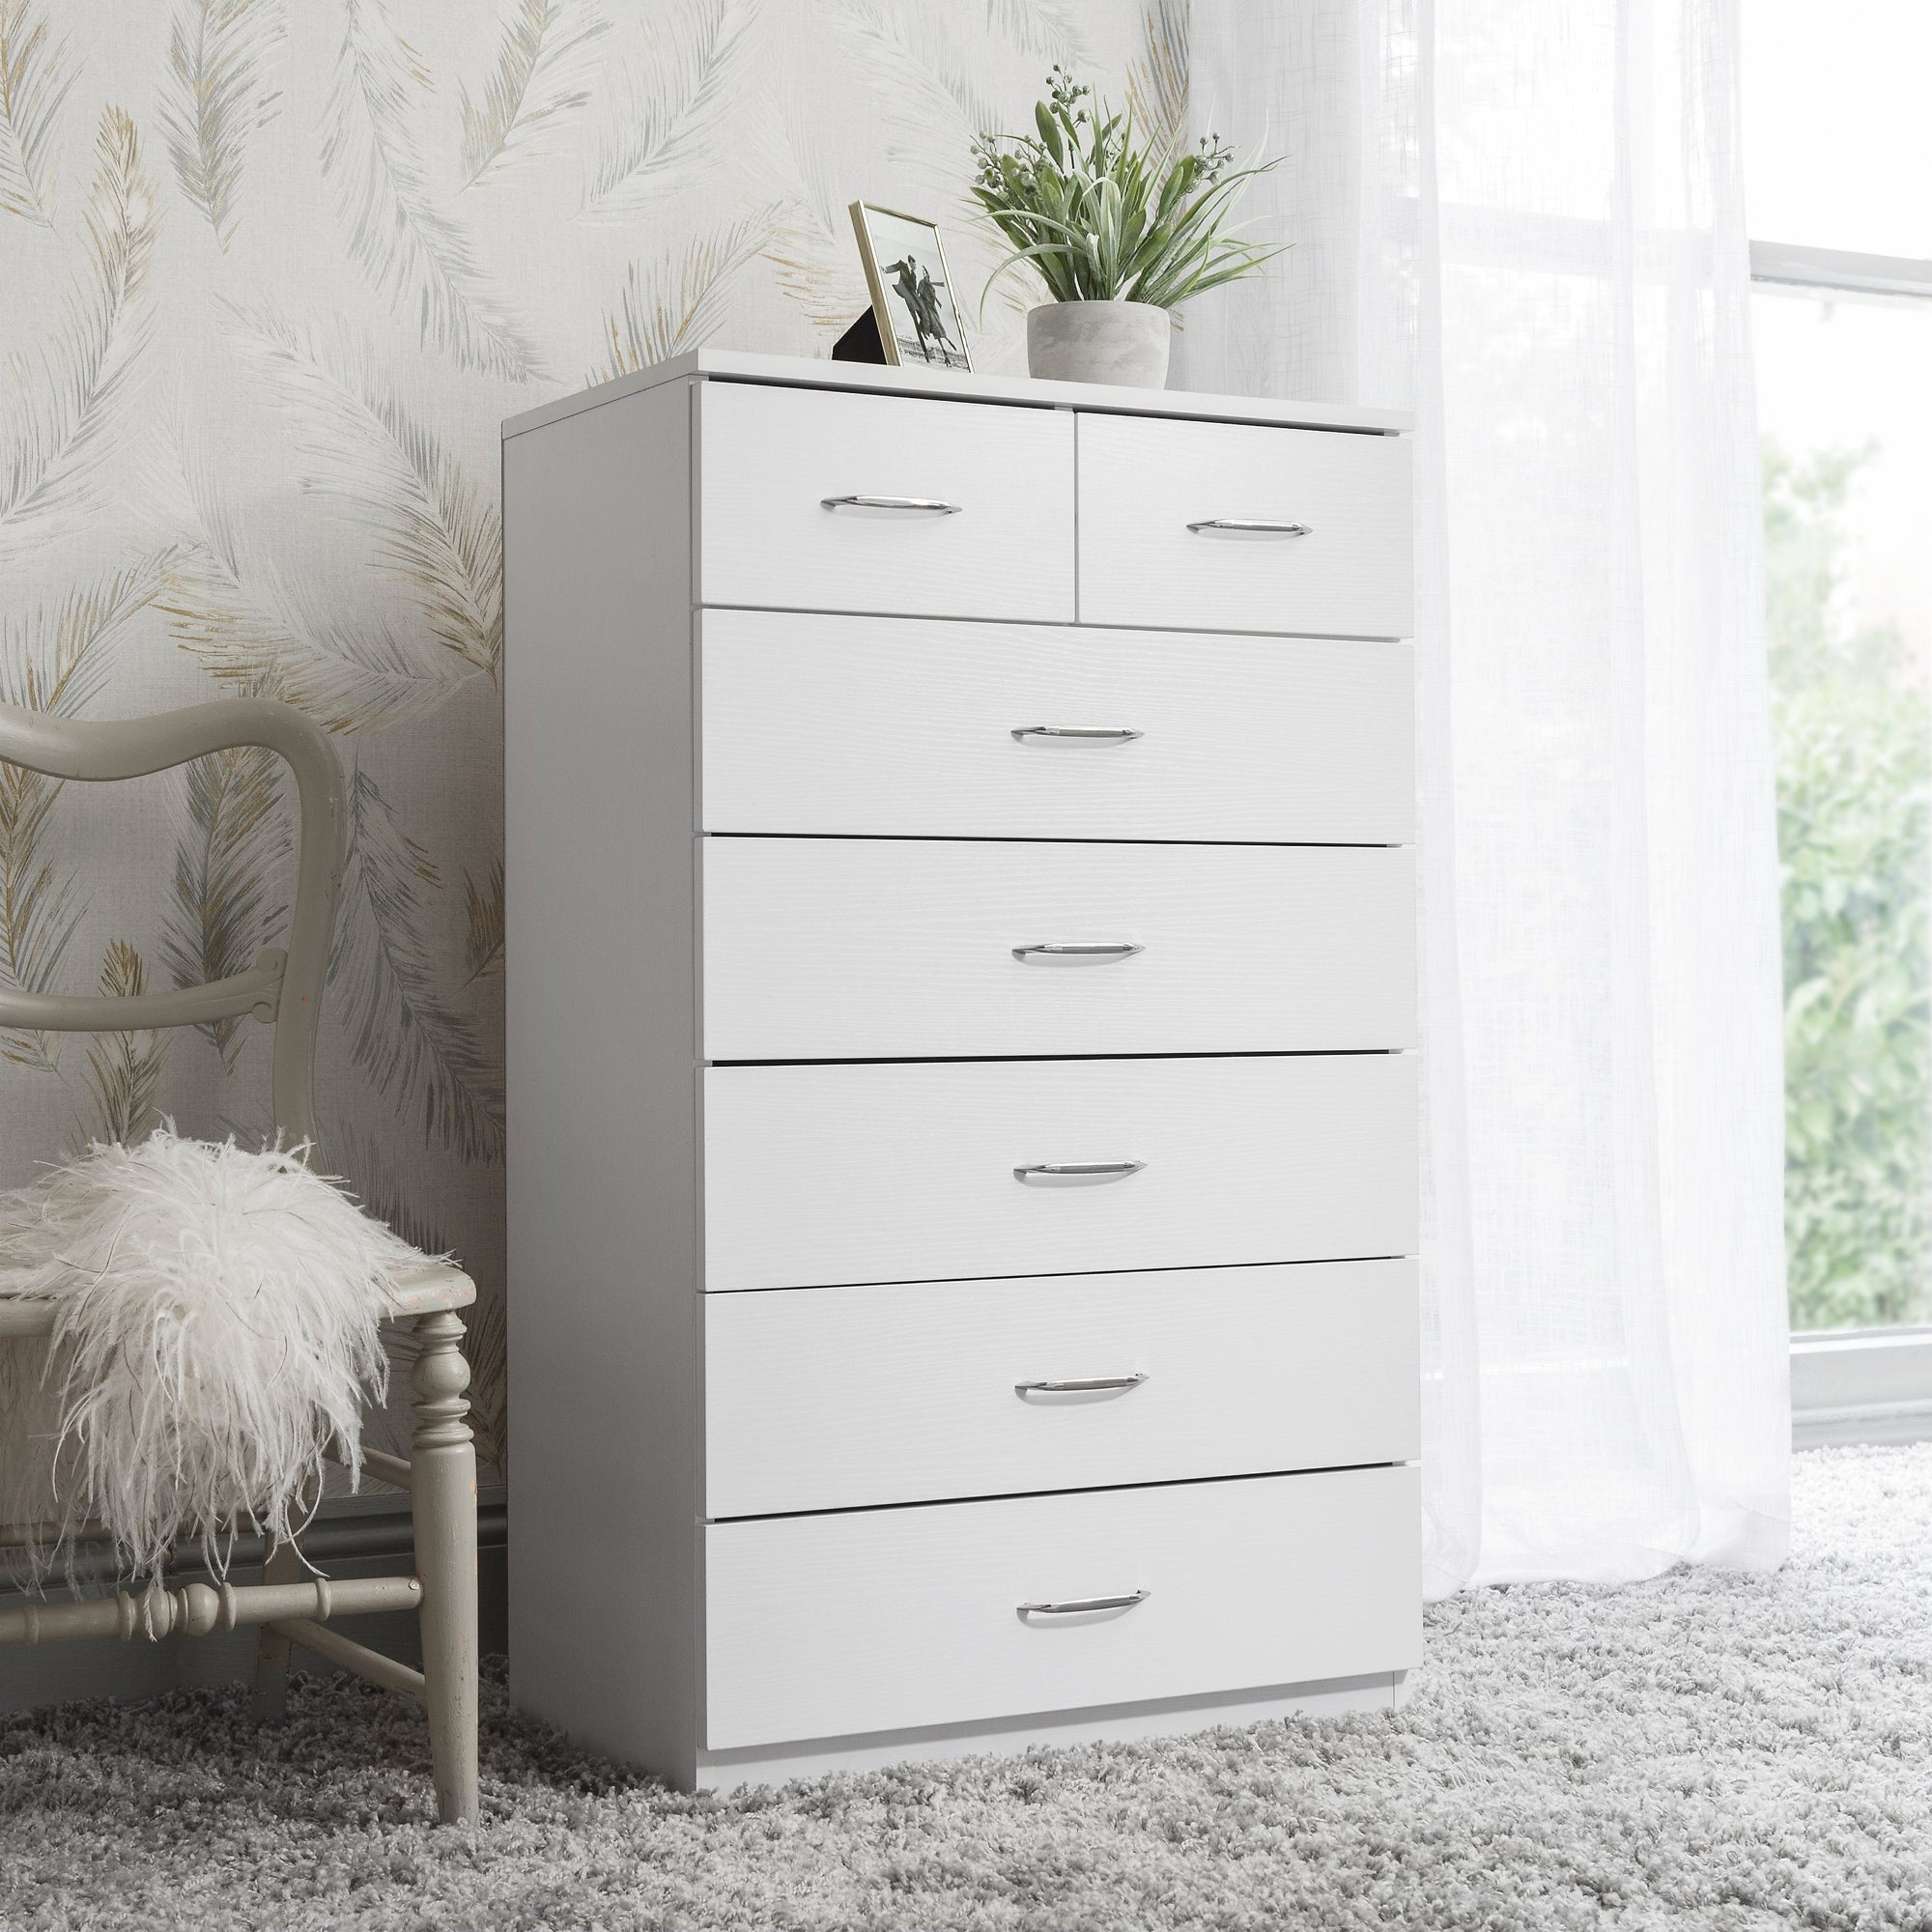 7 Drawer Tall Chest of Drawers in White - PRE-ORDER - IN STOCK – 18 -19 SEPTEMBER - Laura James